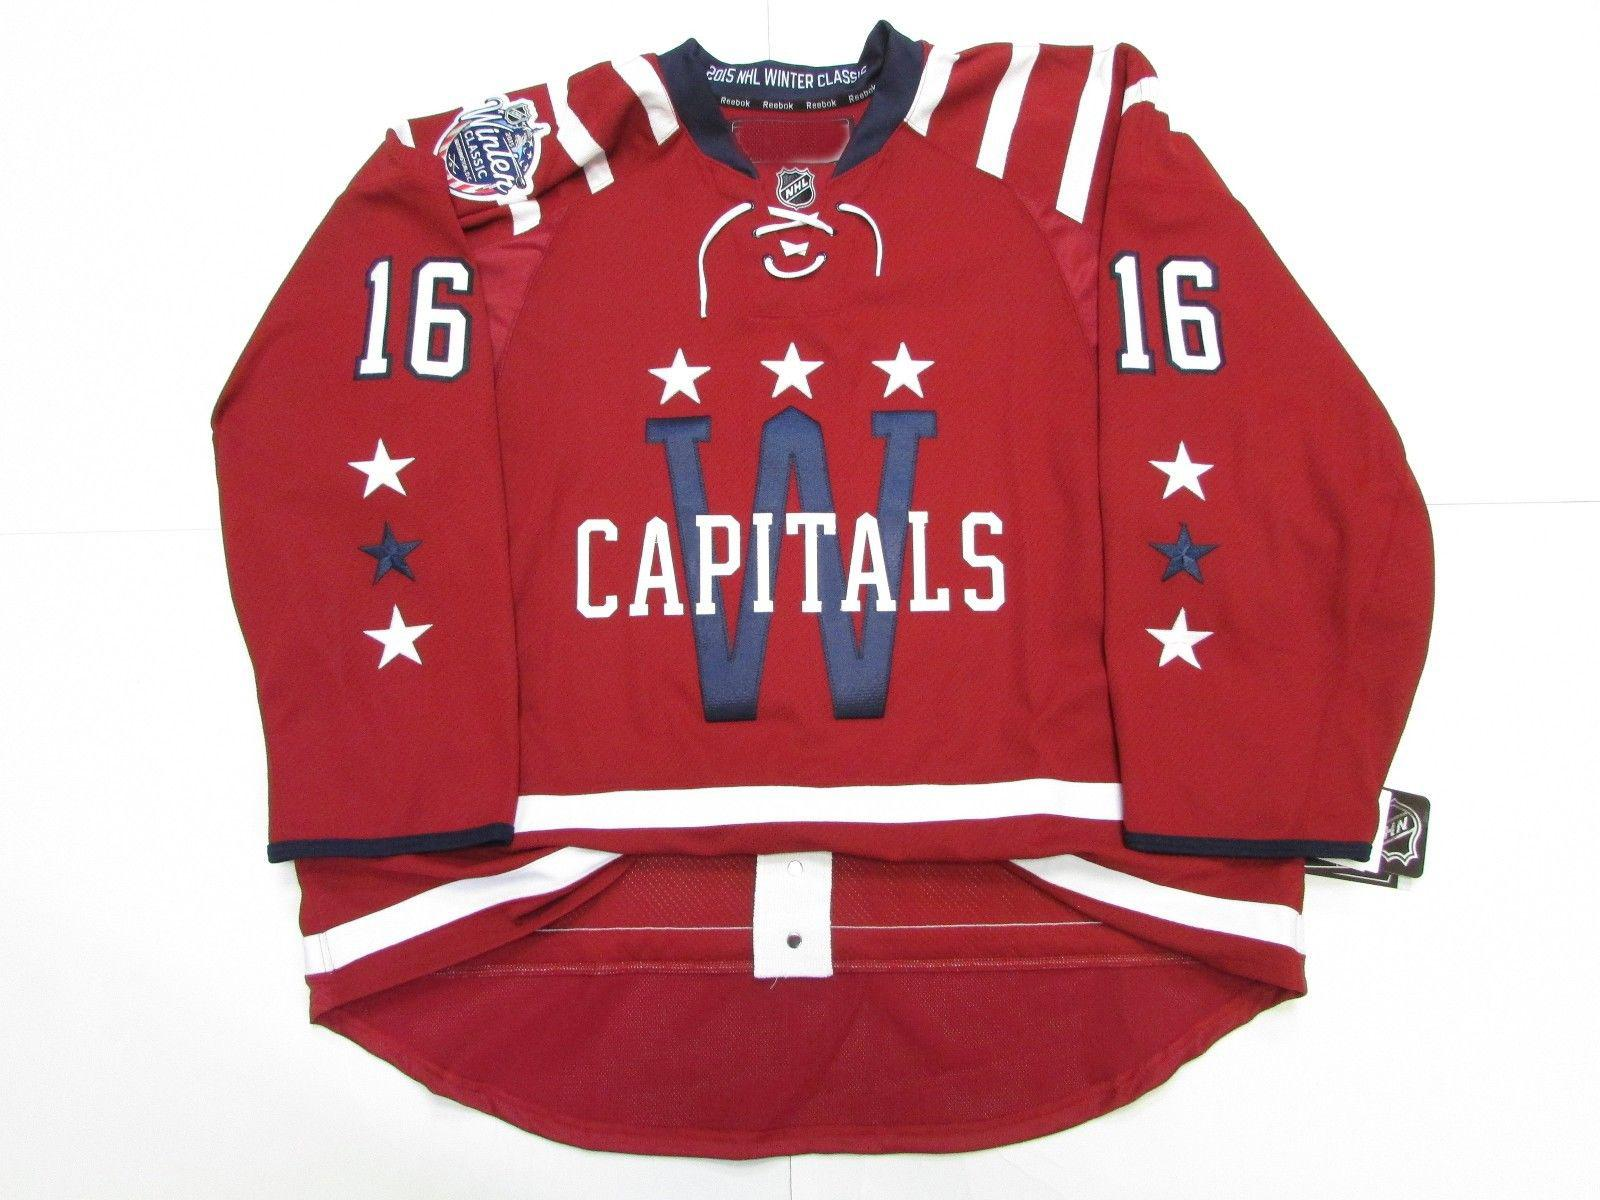 finest selection dcfad 14a91 Cheap custom TRUMP #16 WASHINGTON CAPITALS 2015 WINTER CLASSIC JERSEY  stitch add any number any name Mens Hockey Jersey XS-5XL